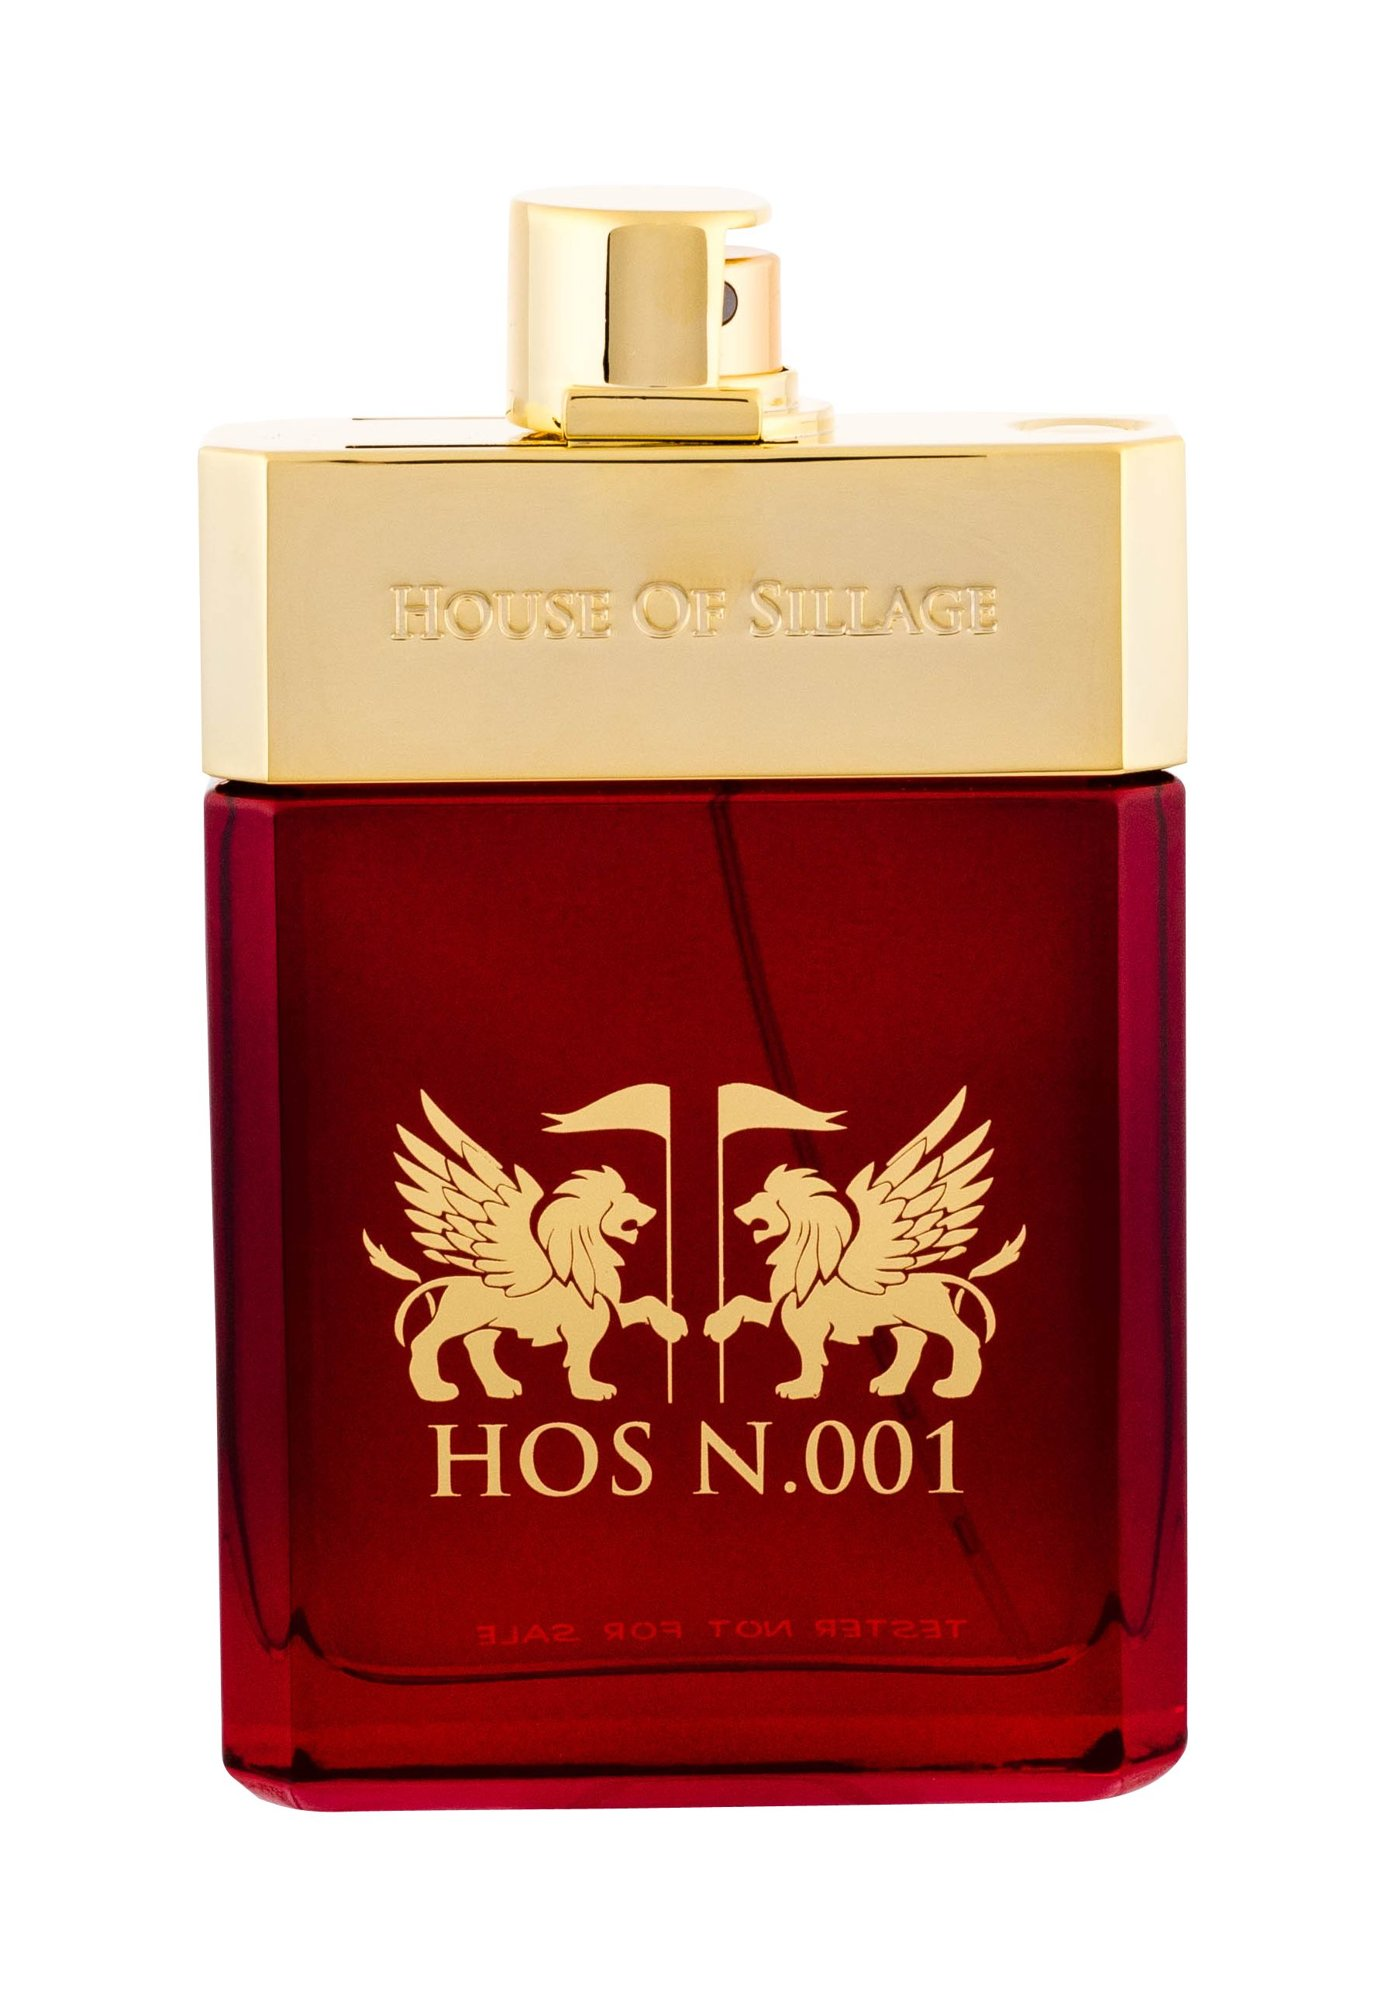 House of Sillage Signature Collection HOS N.001 Perfume 75ml